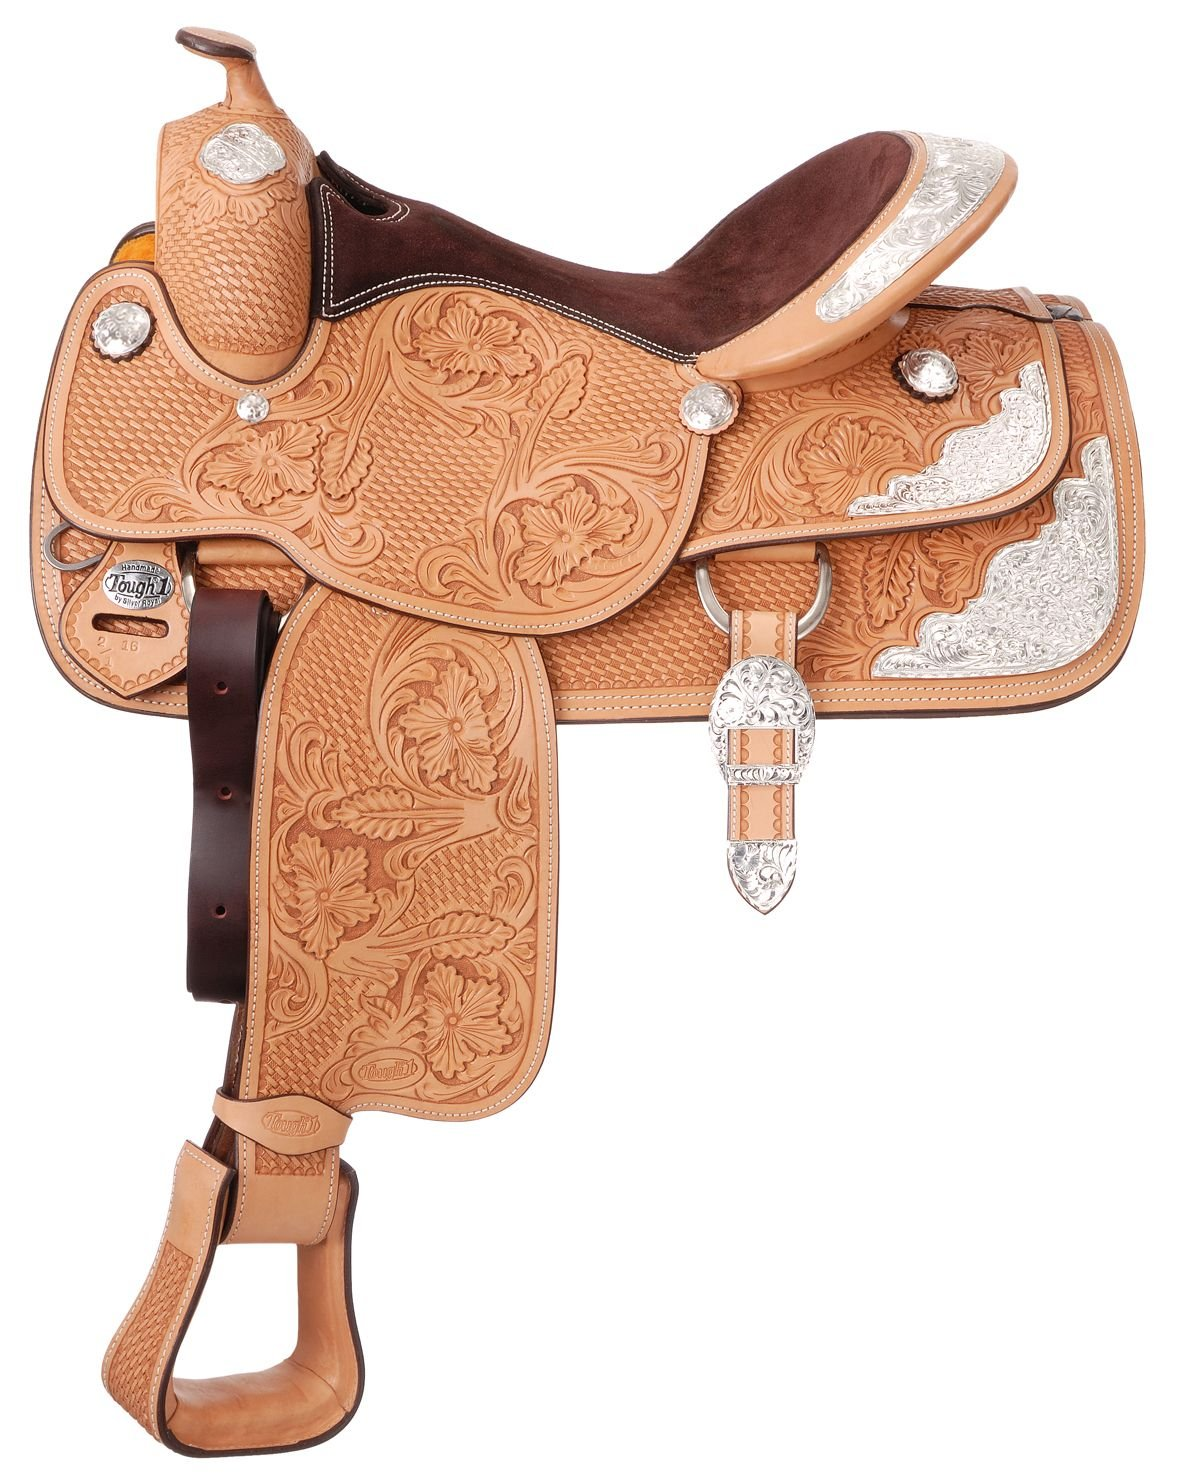 Light Oil 16 1 2-Inch Light Oil 16 1 2-Inch Tough 1 Premium Challenger Silver Show Saddle